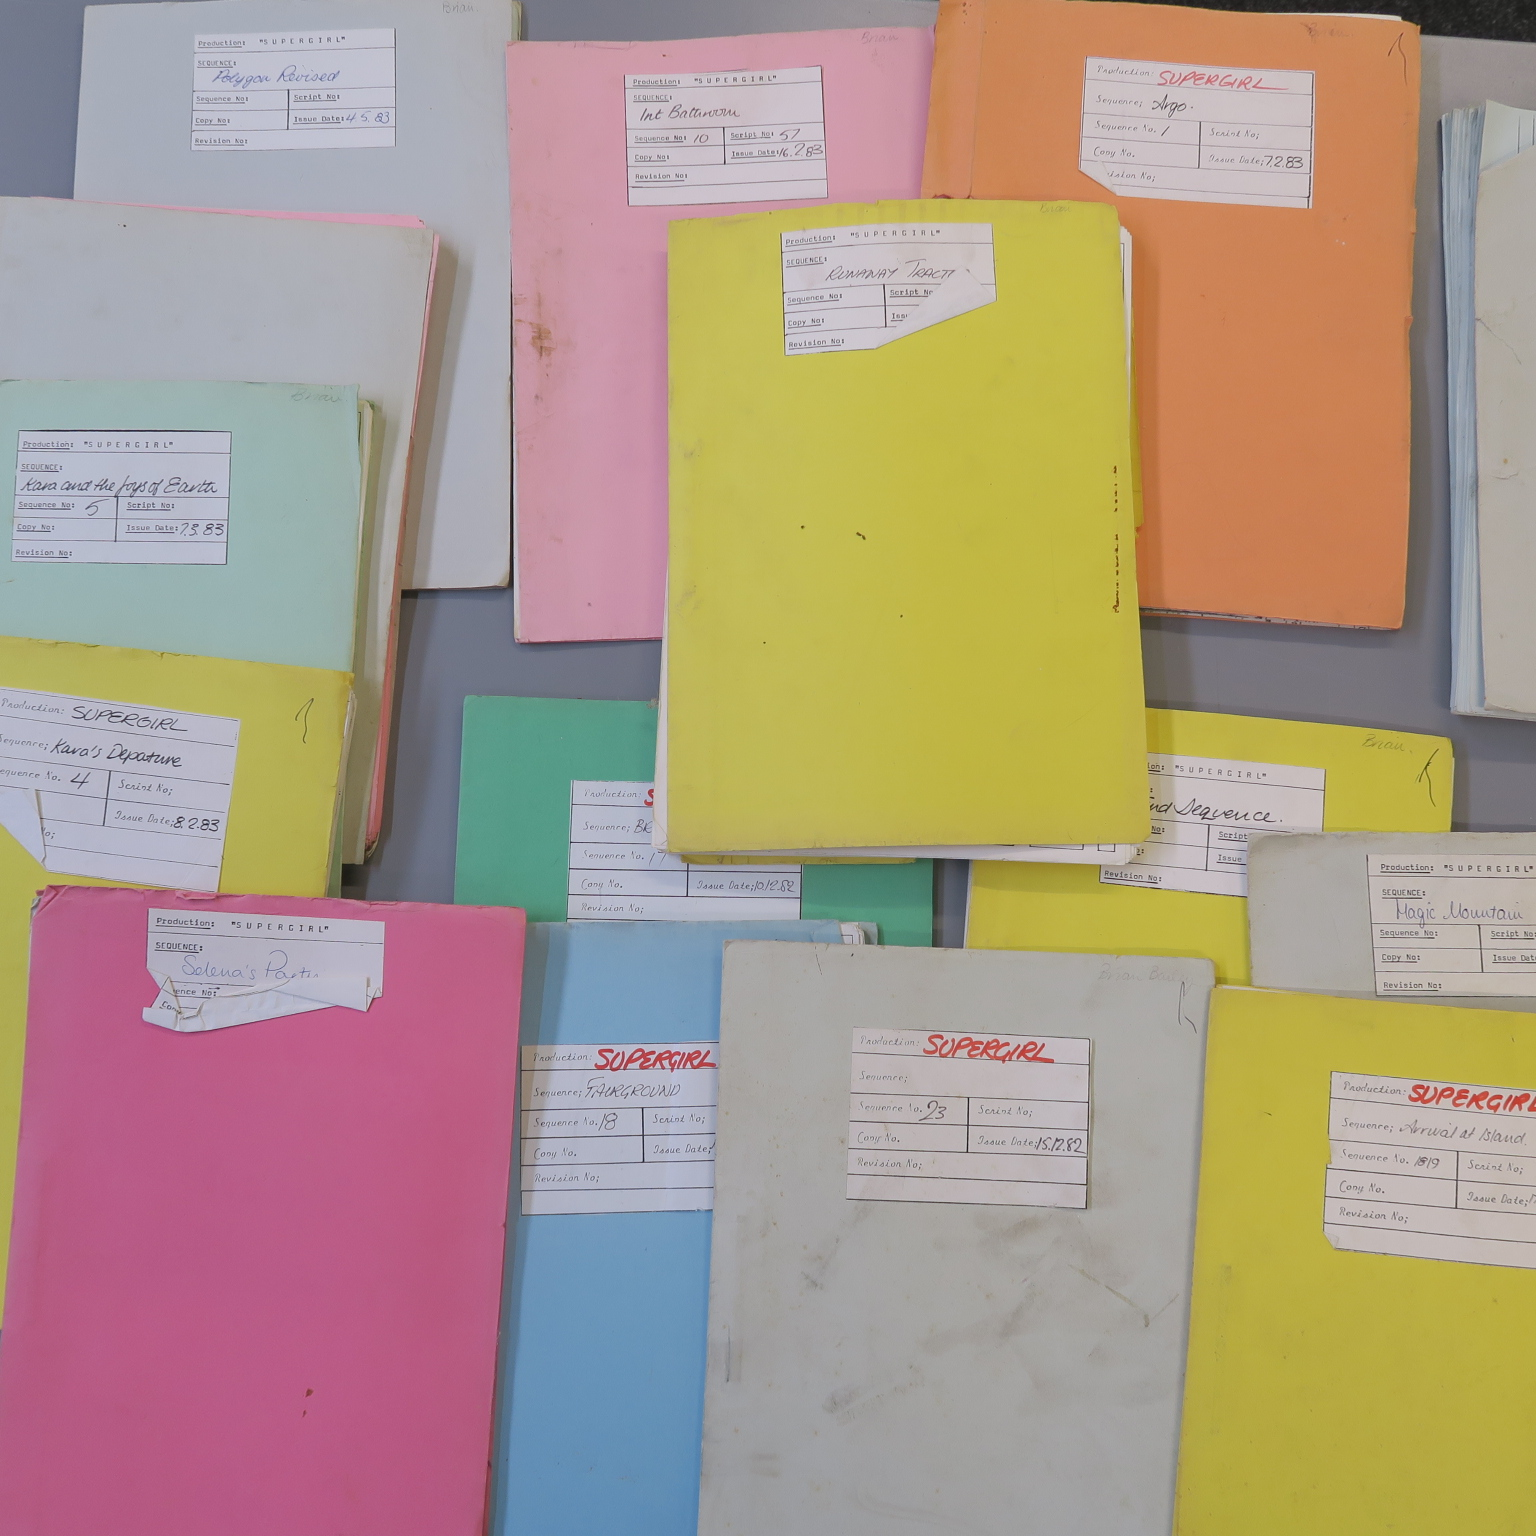 Lot 36 - Supergirl original mimeographed production storyboards in titled folders dated from 1982 to 1983